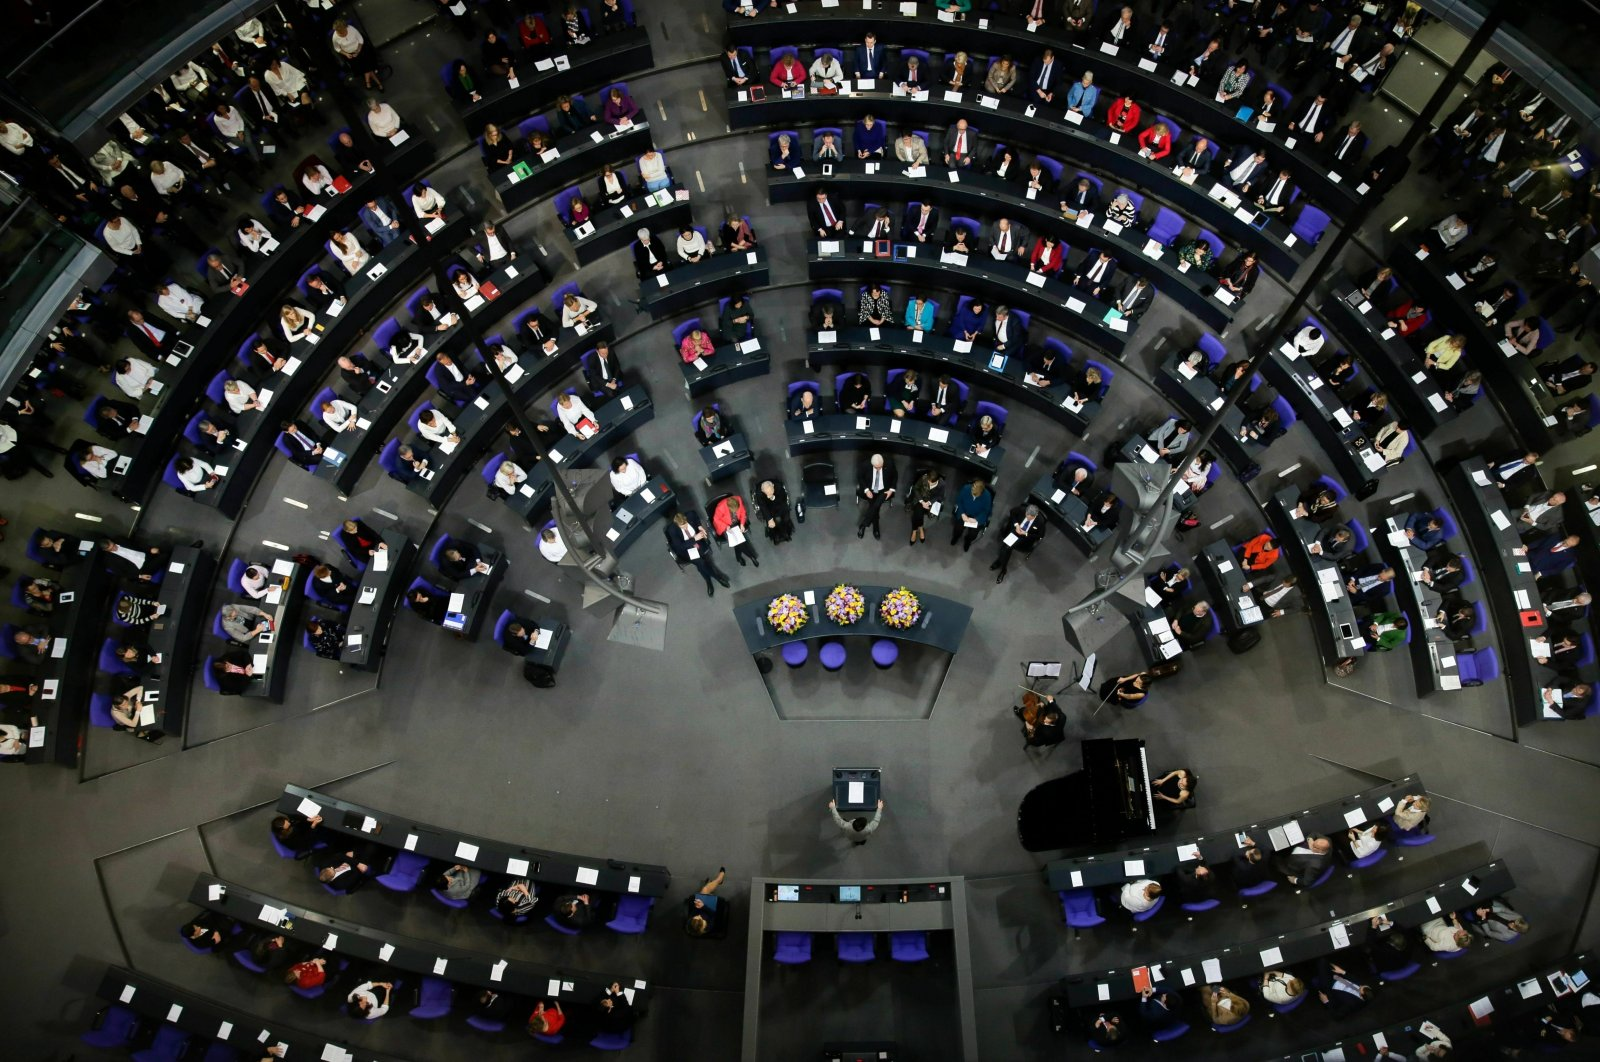 German lawmakers attend a special parliament session at the Reichstag building, host of the German federal parliament, Bundestag, to celebrate 100 years of women's suffrage in Germany, Berlin, Germany, Jan. 17, 2019. (AP Photo)